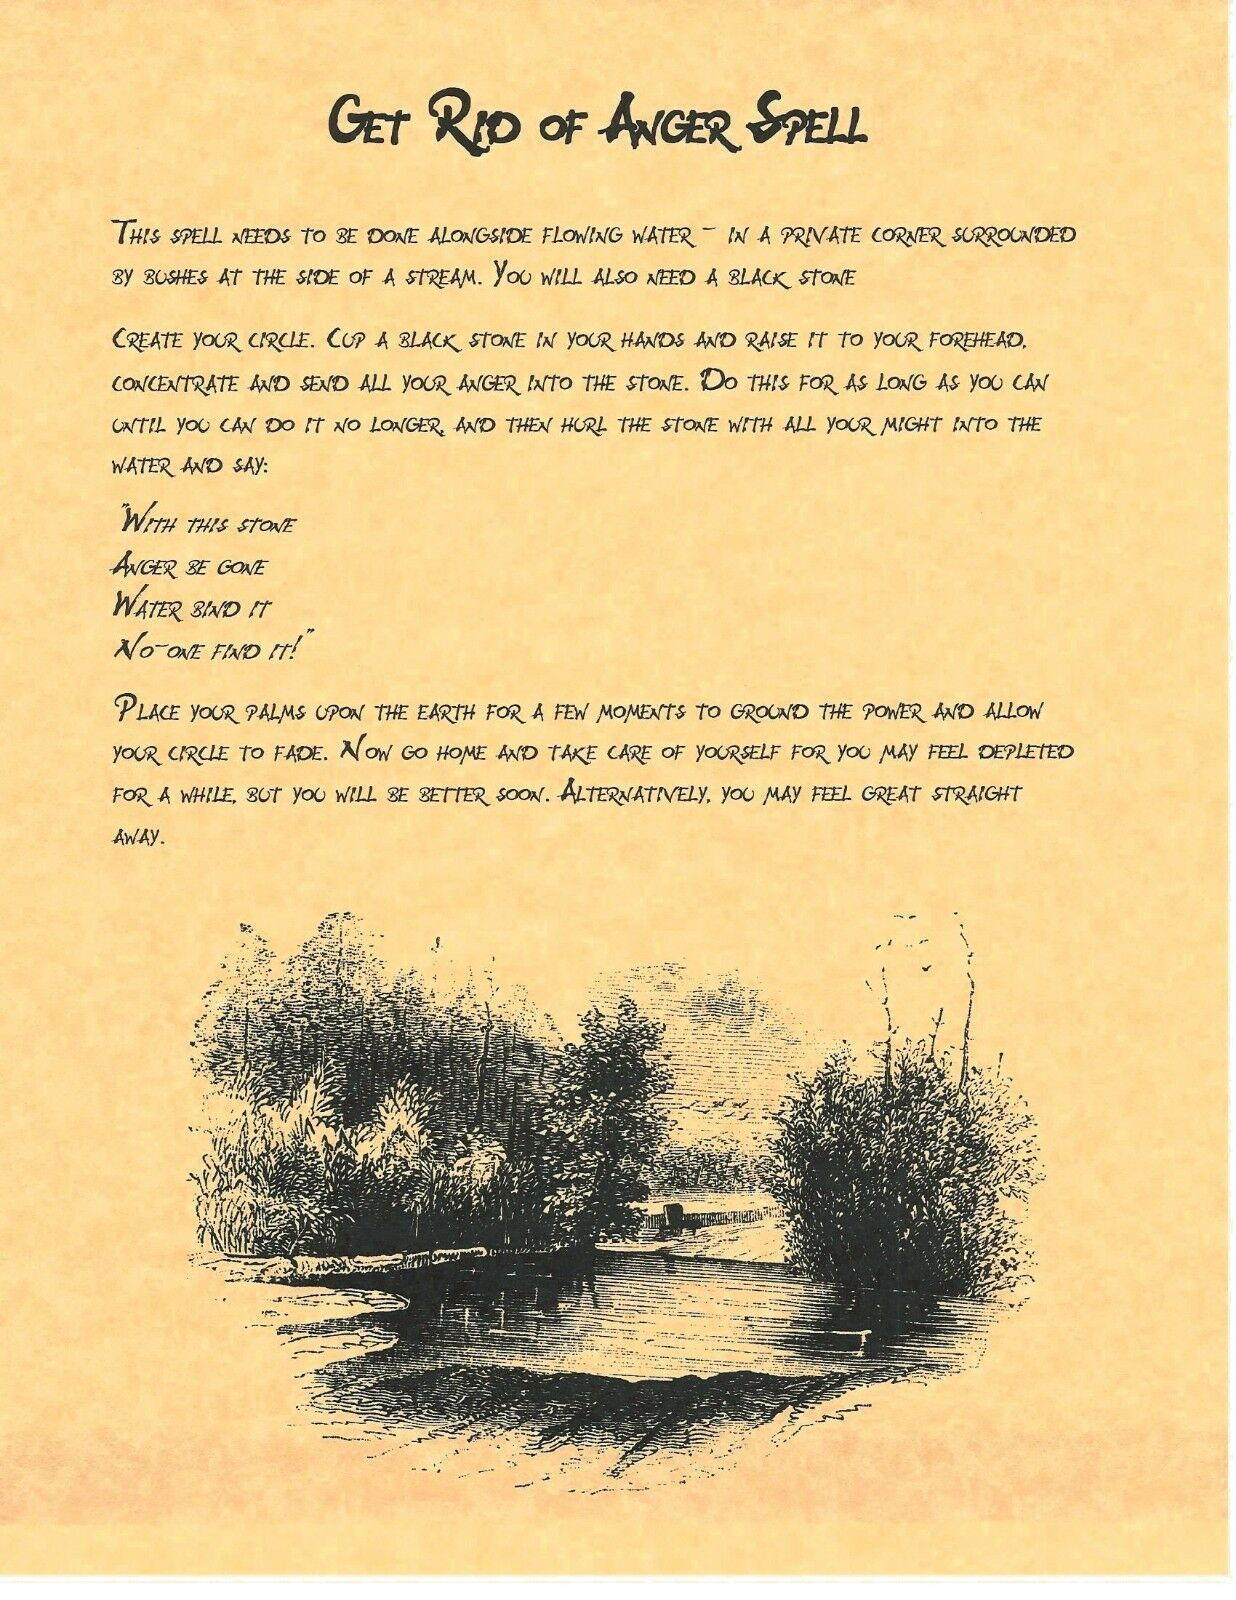 Details about Book of Shadows Spell Pages ** Get Rid of anger Spell